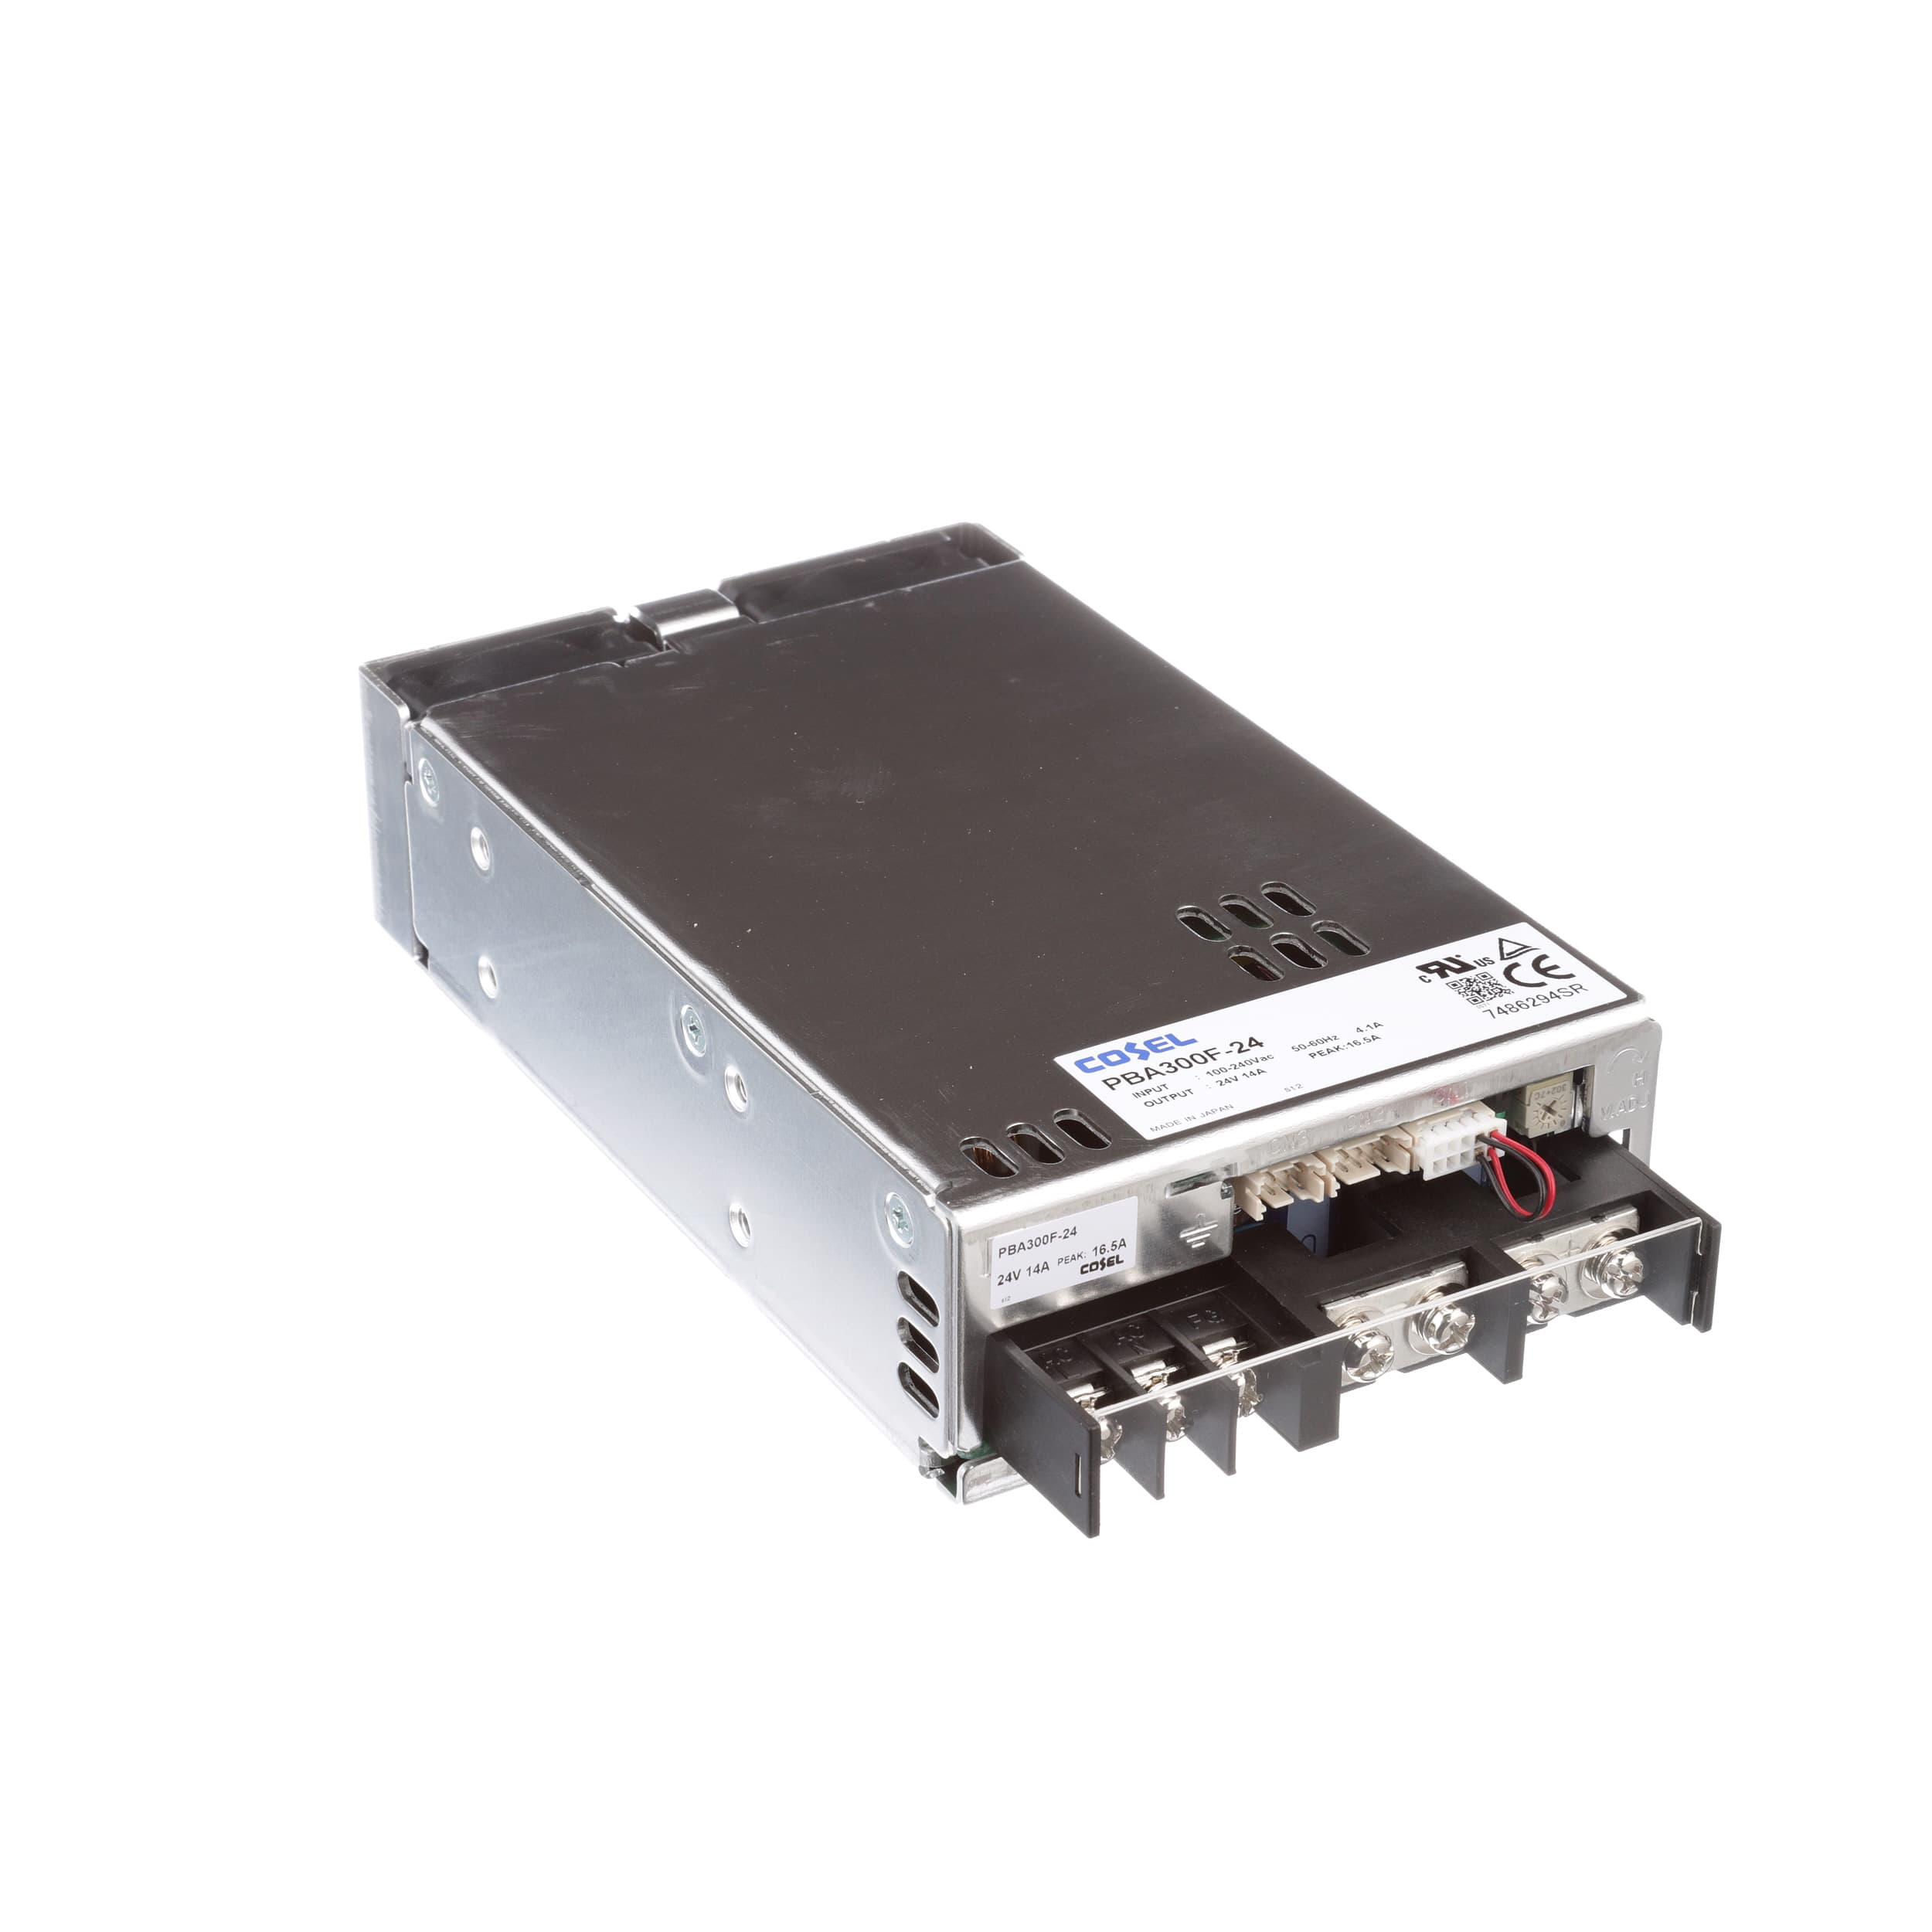 Cosel Usa Inc Pba300f 24 Power Supply Ac Dc 24v 14a 85 Vdc Dip Reed Relay All Electronics Corp 264v In Enclosed Panel Mount Pfc 336w Pba Series Allied Automation